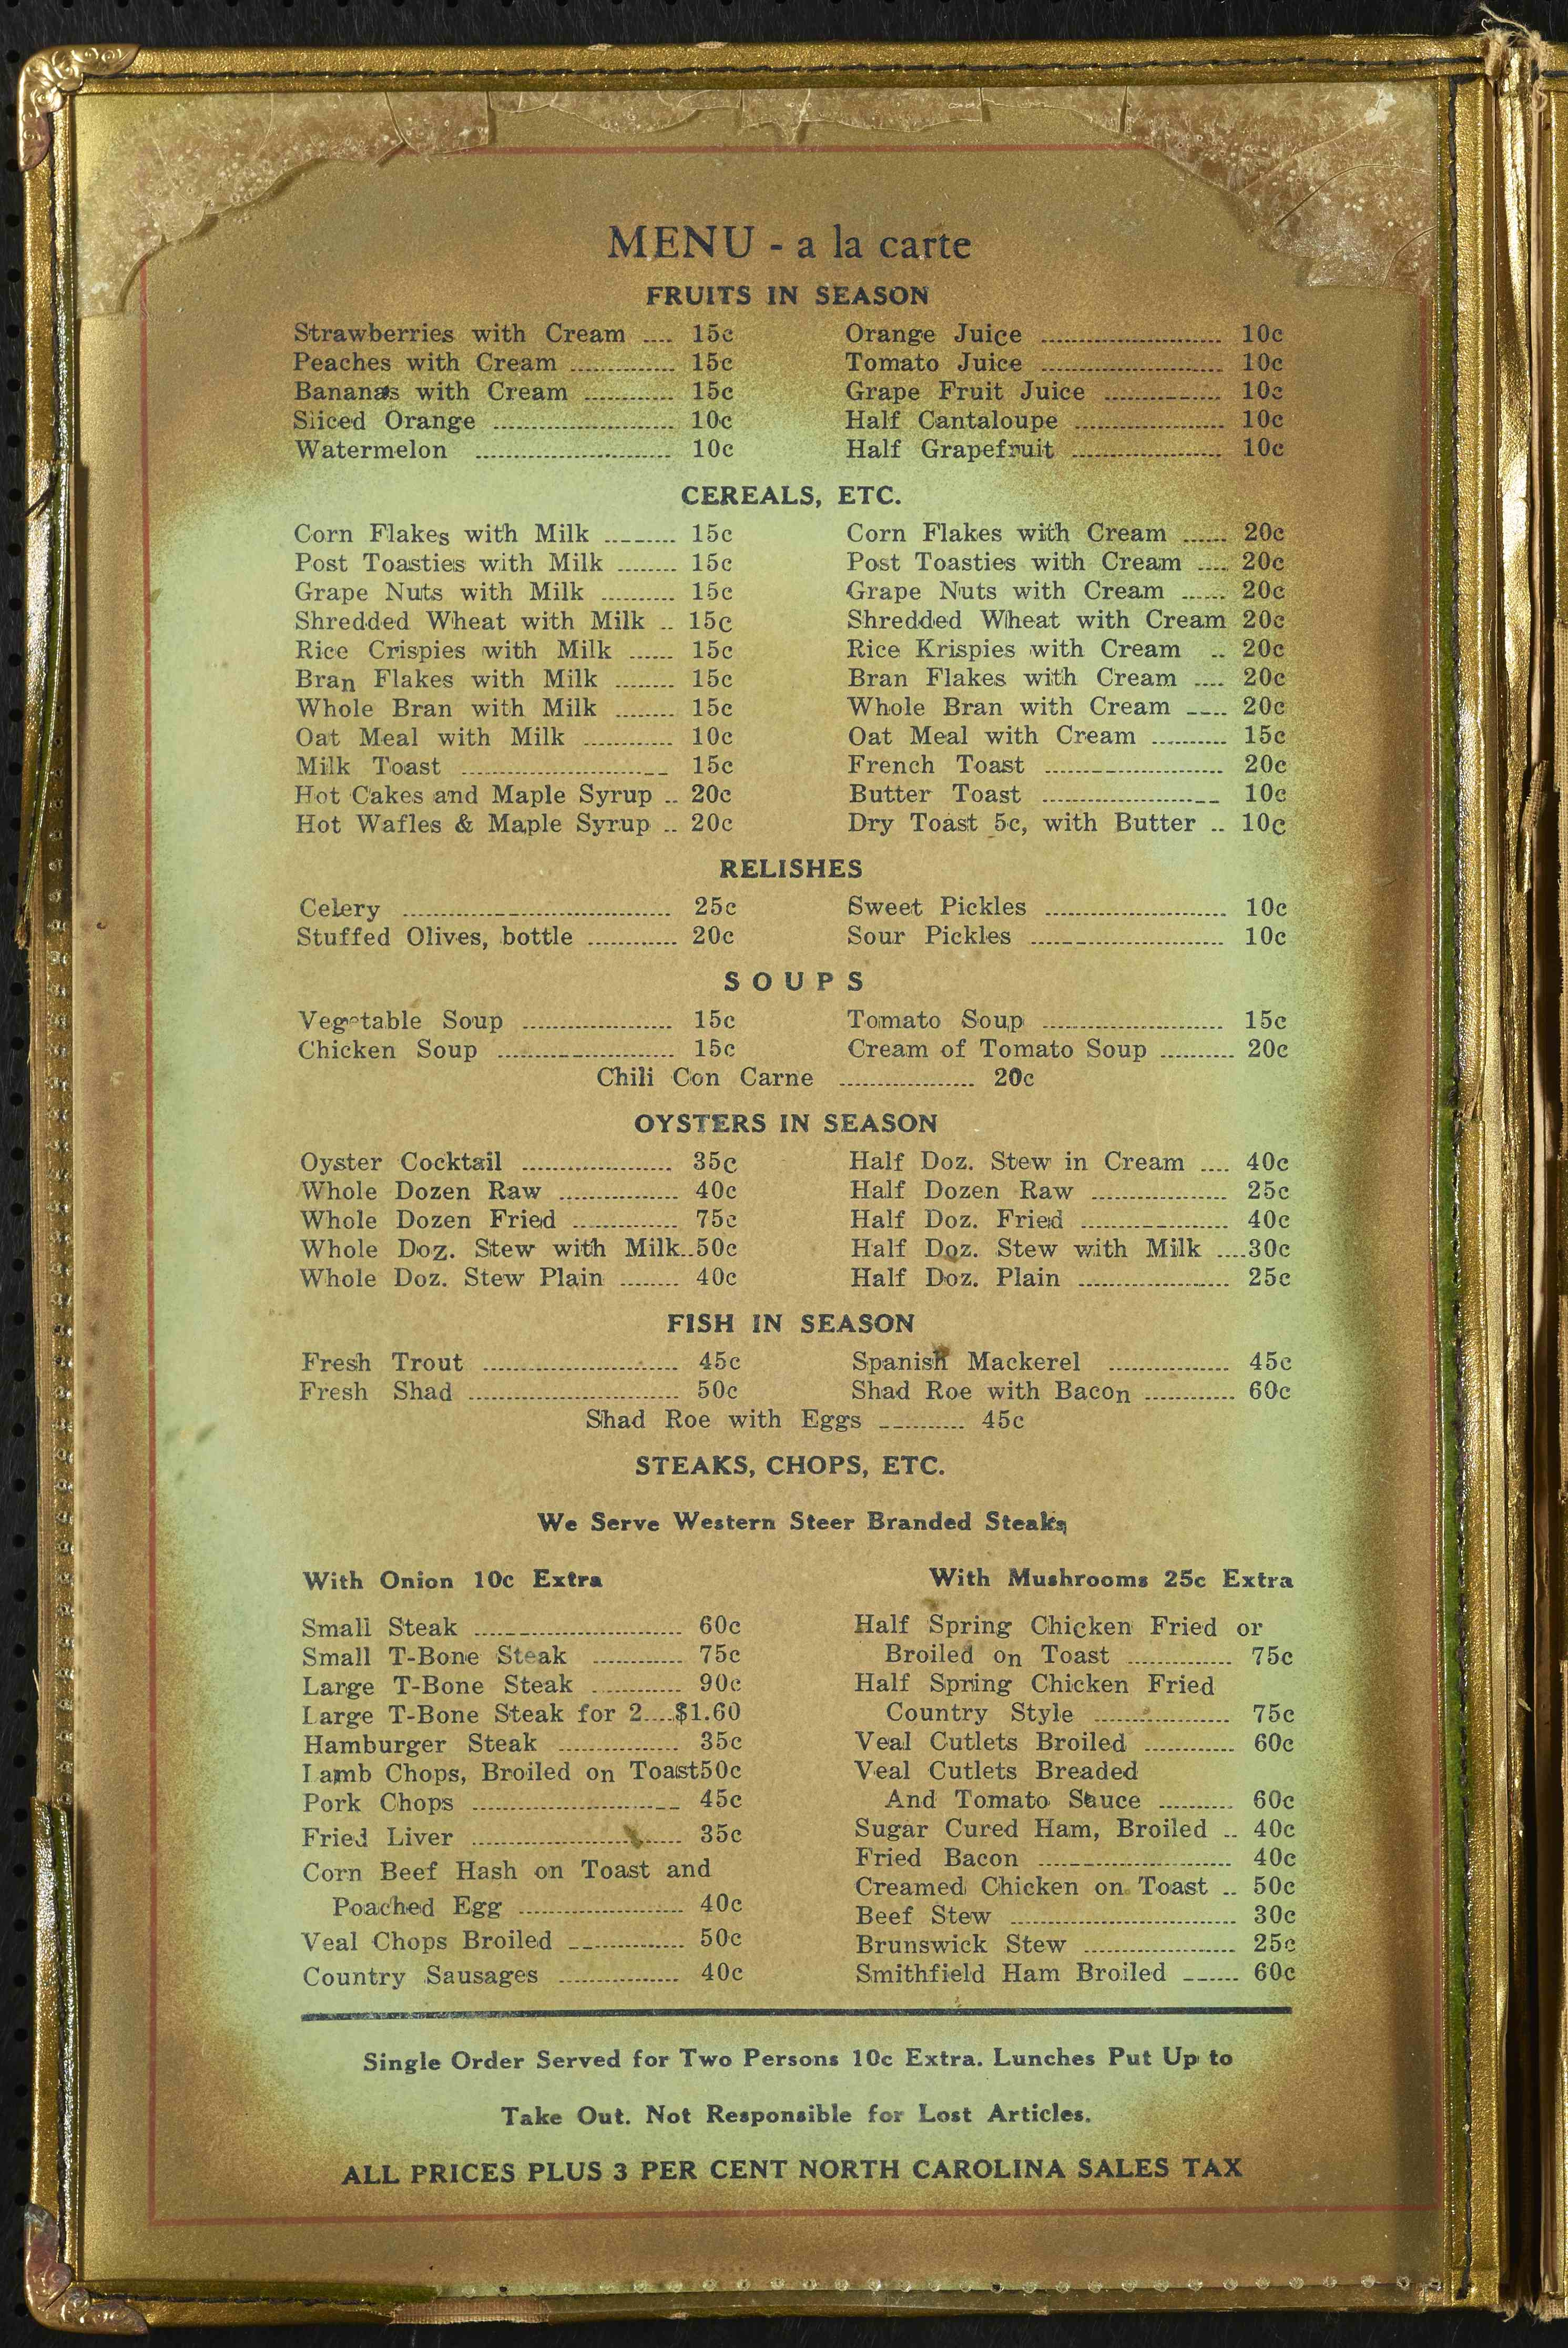 Royal Palm Restaurant Menu, page 2